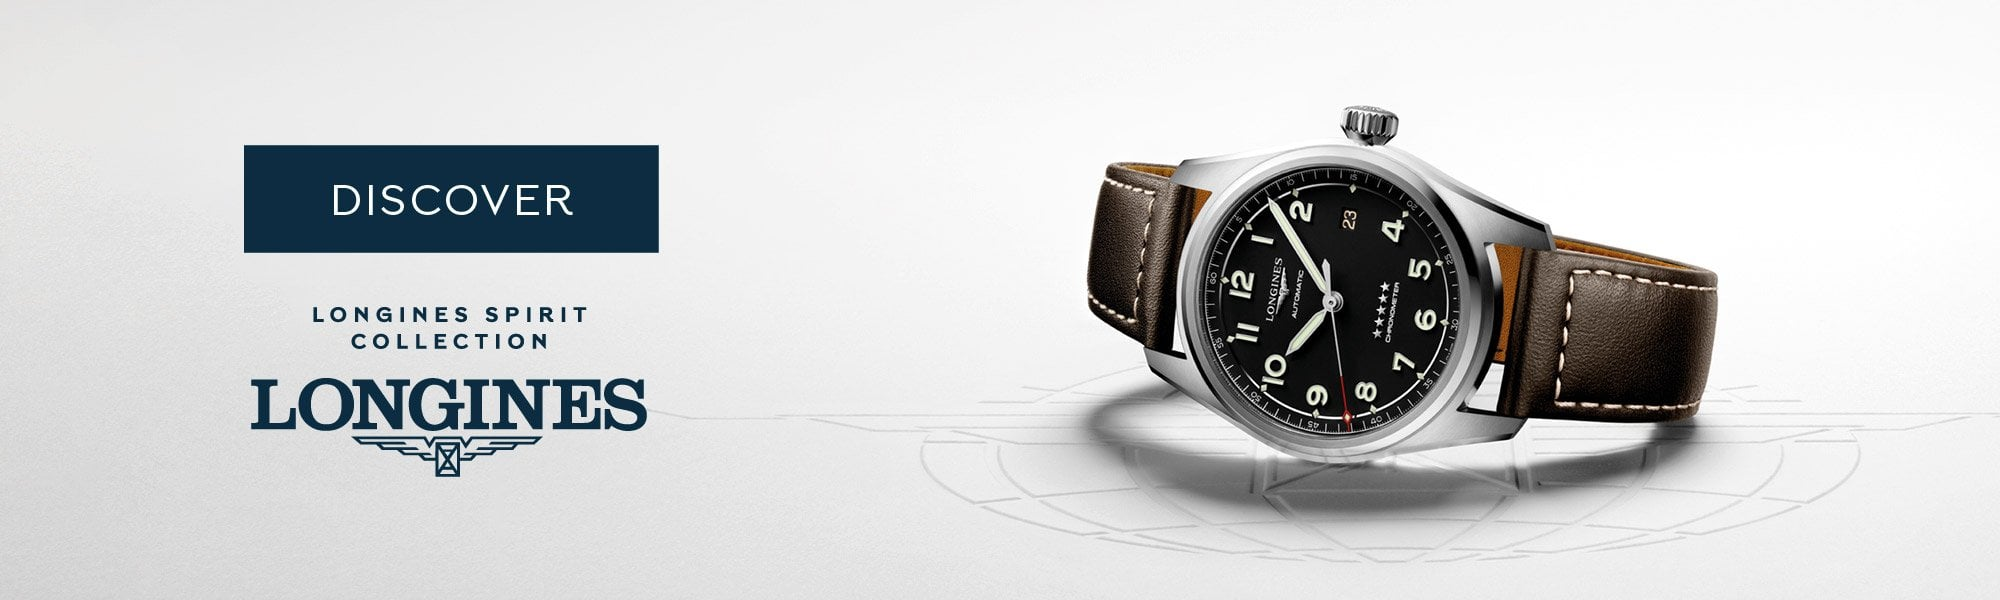 Longines Spirit Watches - Explore the Collection